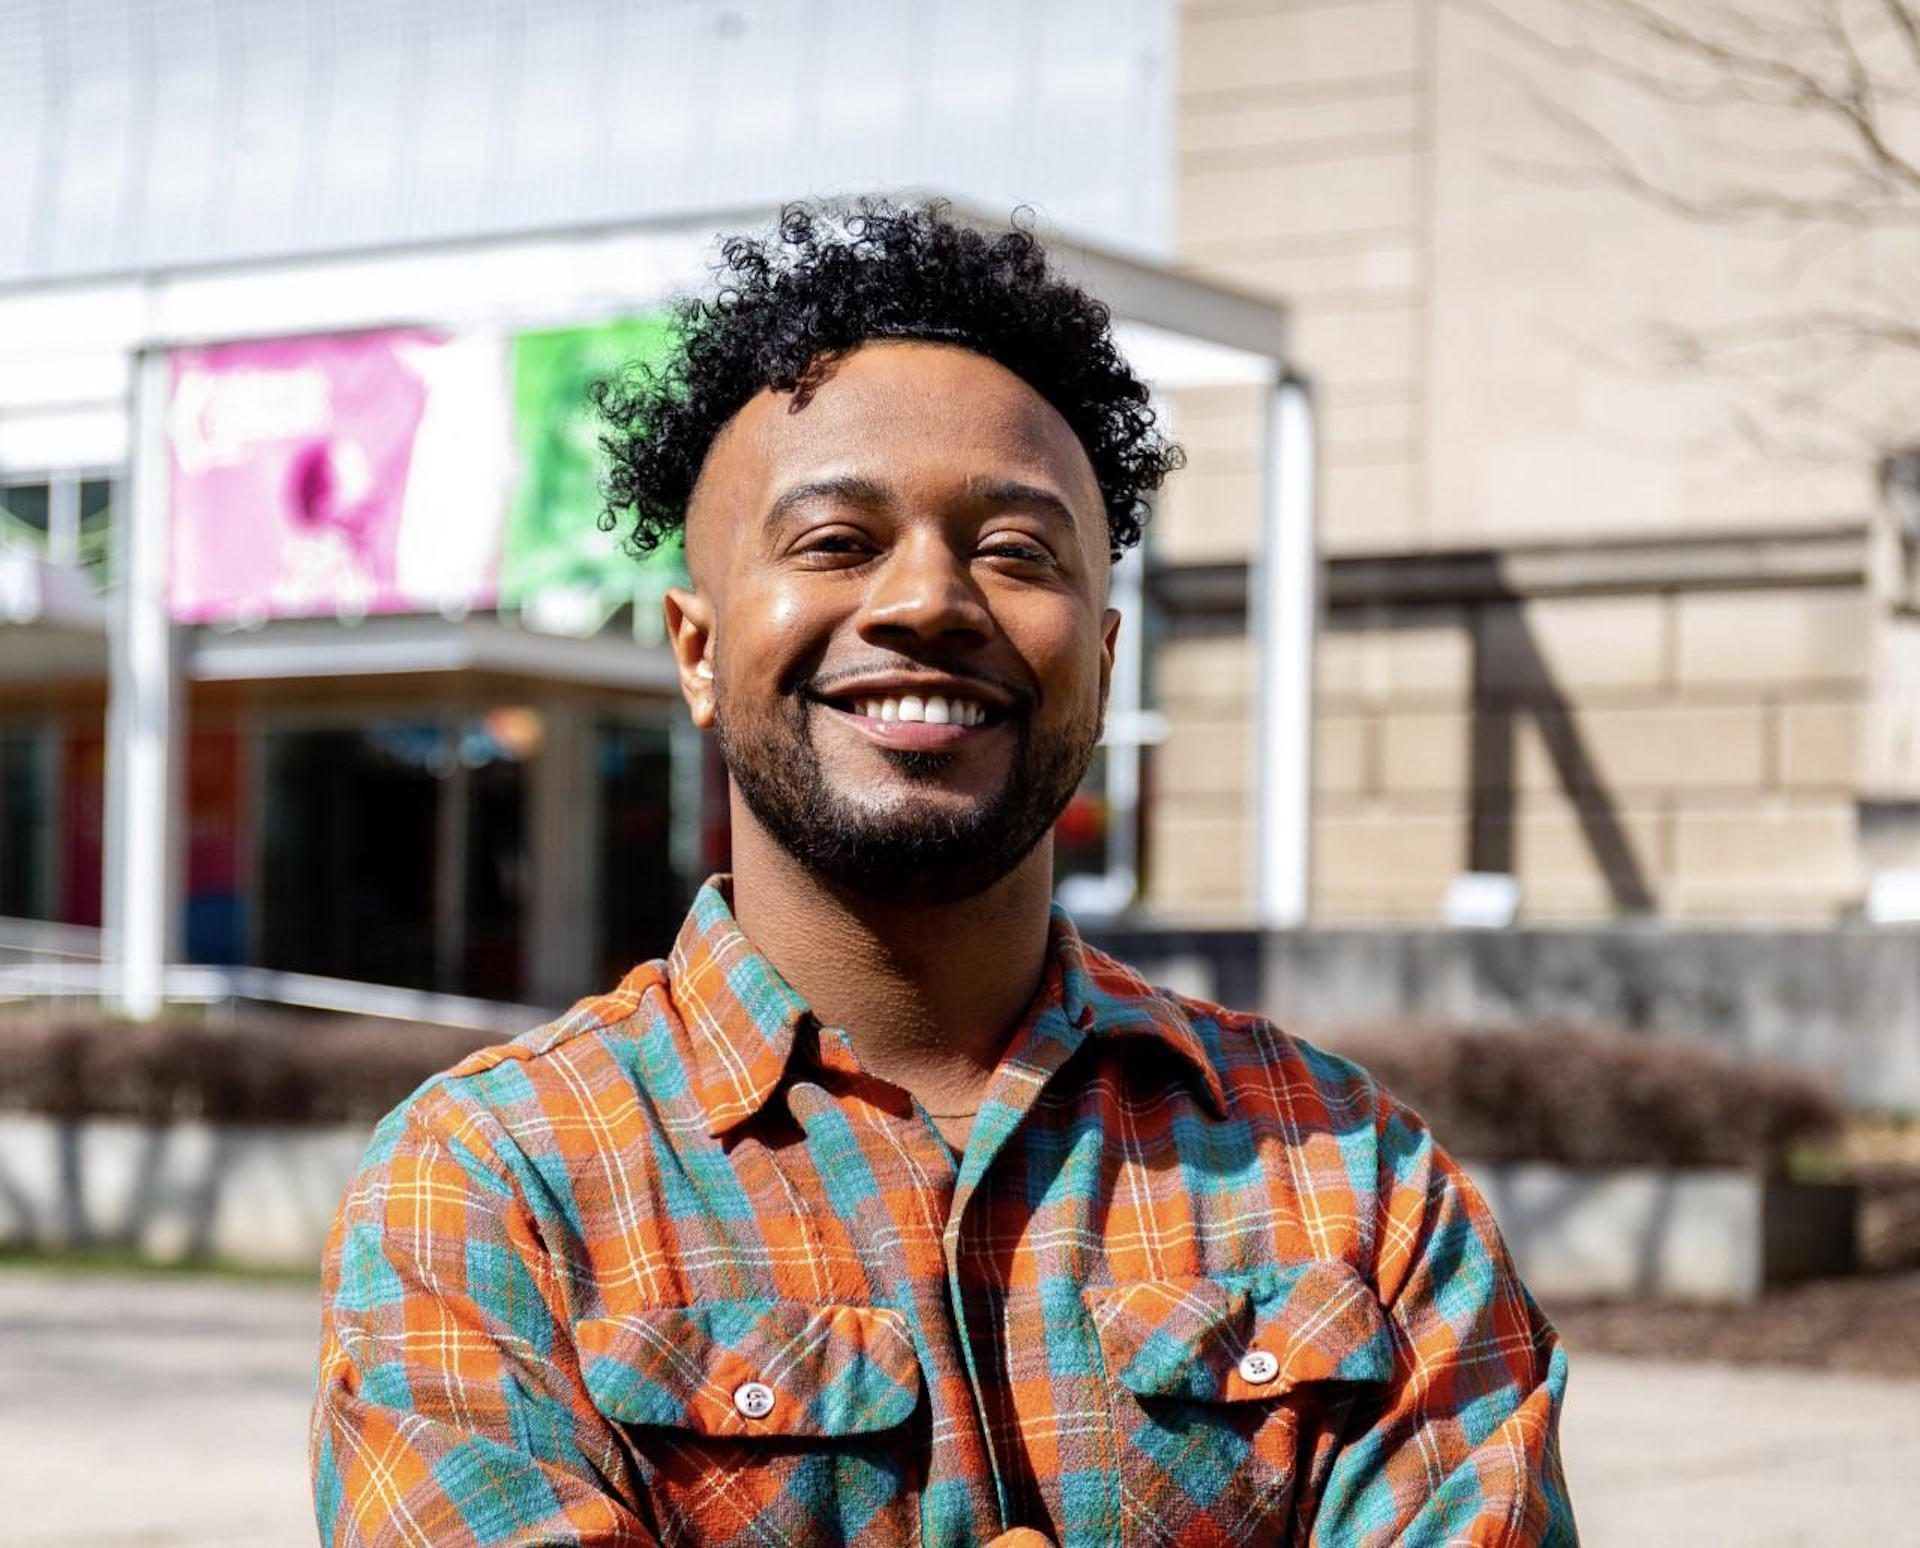 Will Tolliver Jr., a former Children's Museum employee, wrote the open letter calling out the institution.